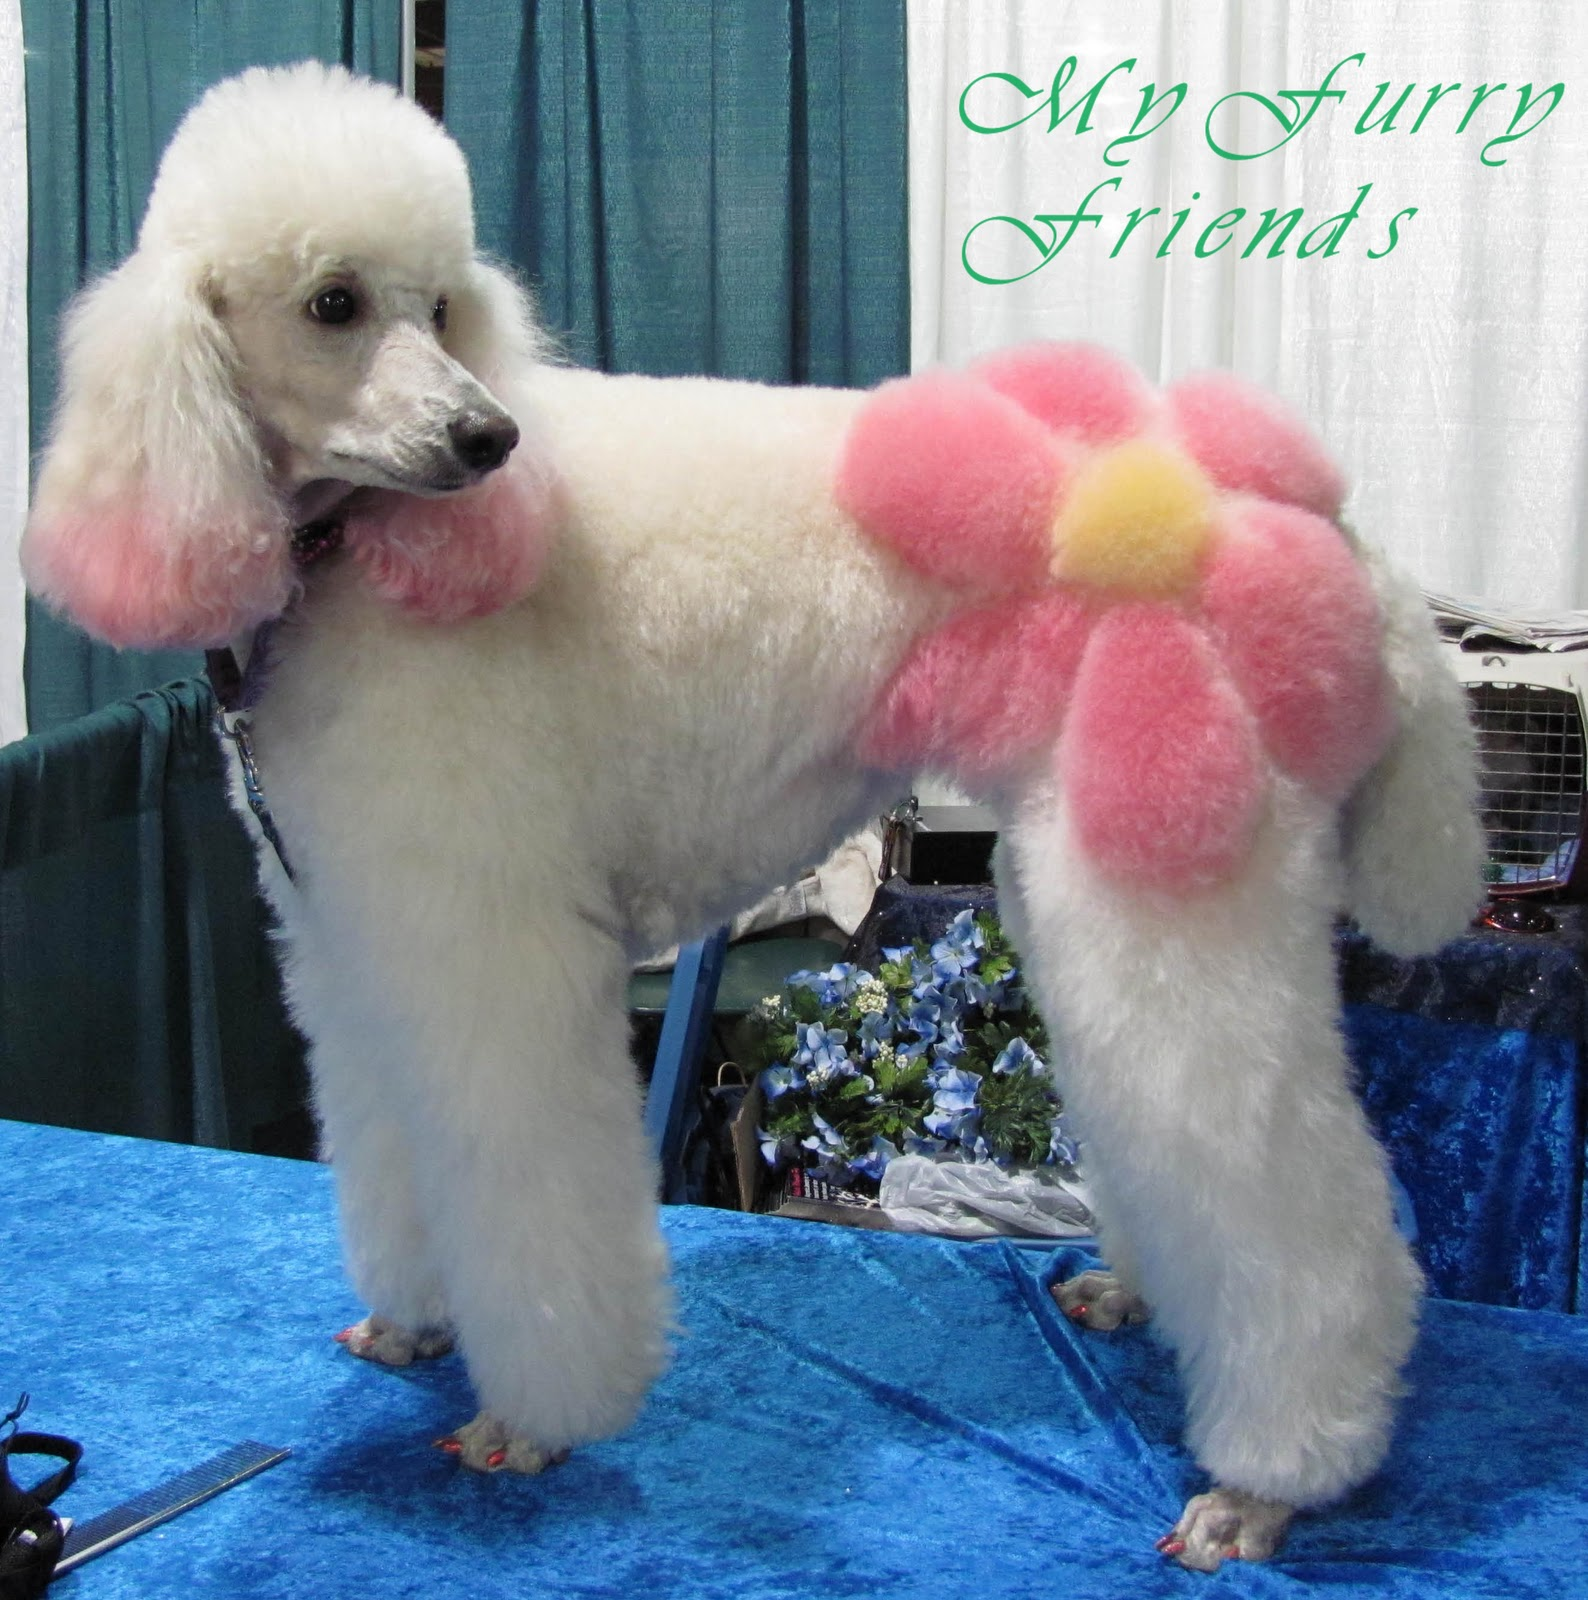 Drawn poodle bad Bad The Grooming: Pet The